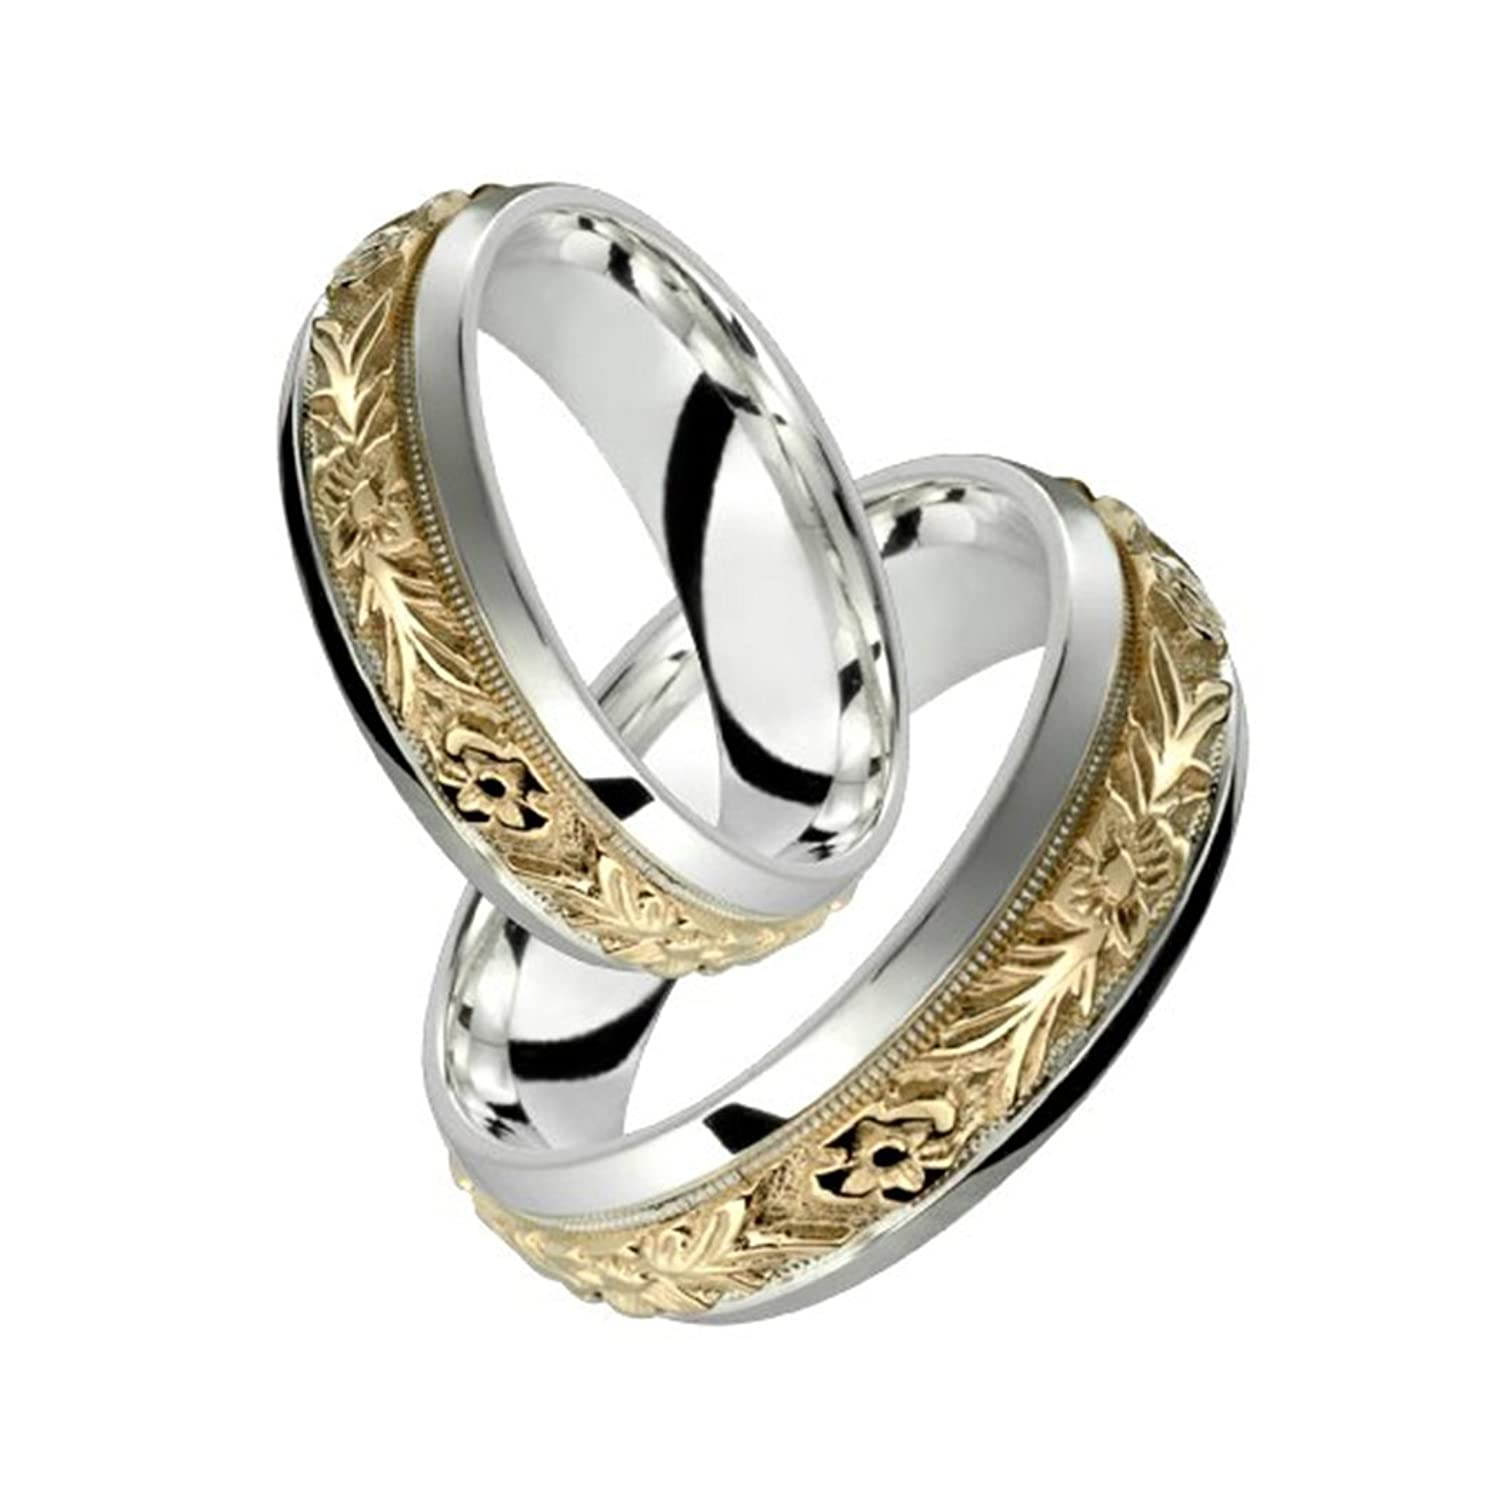 la tone rockford gold collection ct diamonds mens acbc products two with wedding min rings ring faaebcdd band paz